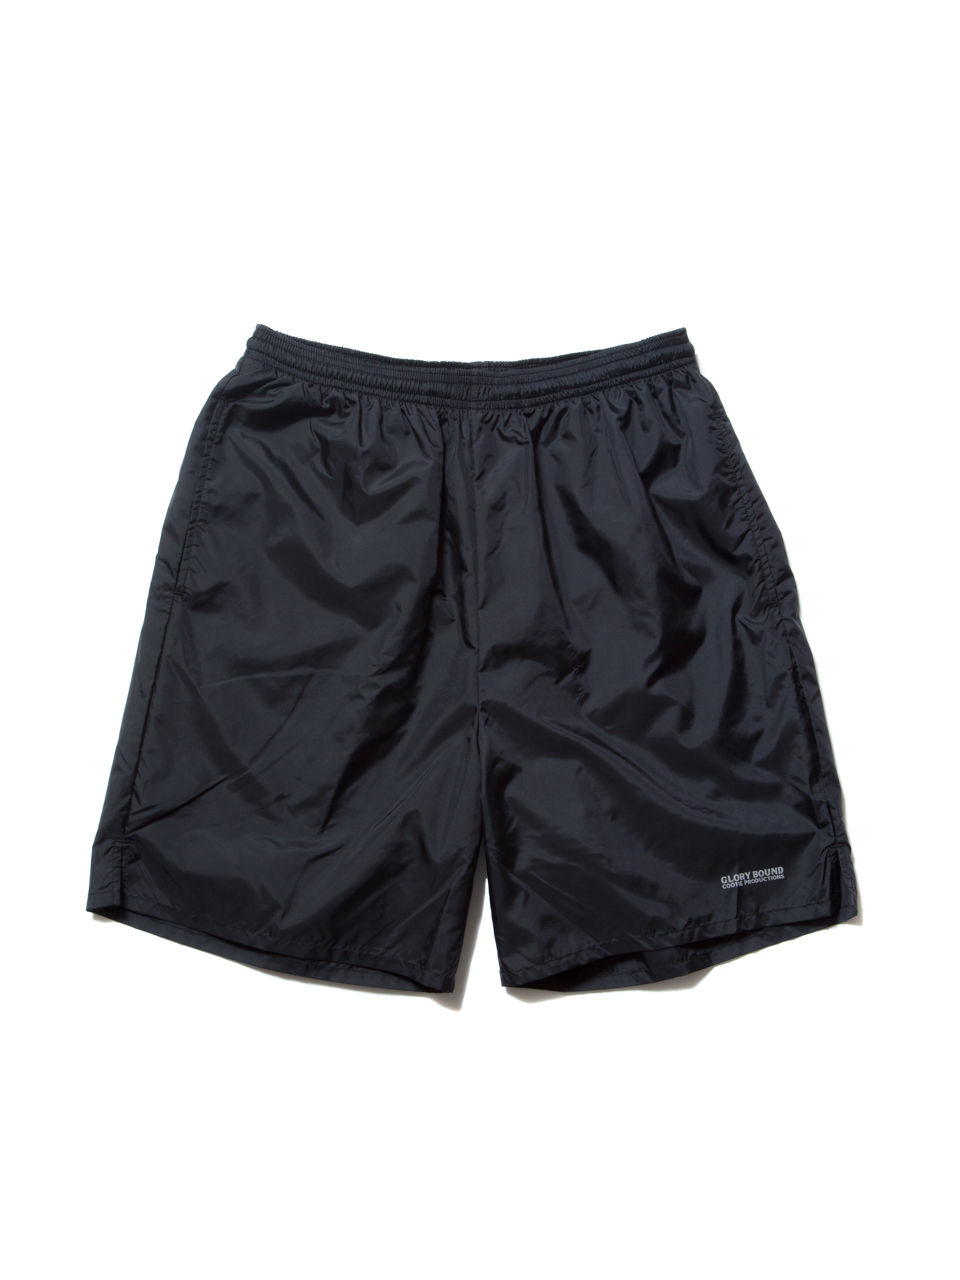 COOTIE - Nylon Drawstring Shorts